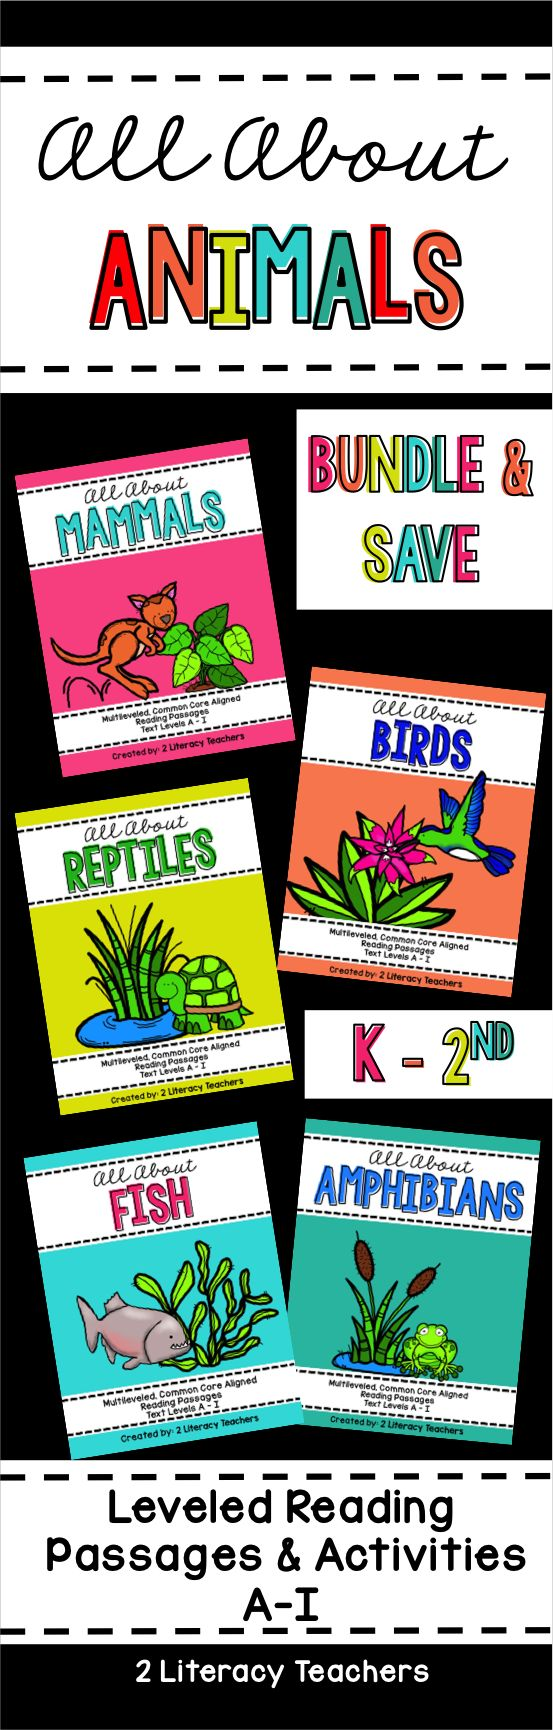 All About Animals is a Bundled set of leveled reading passages and activities. Perfect to support ALL readers in your K-2 classroom that are reading at a level H/I and below! Fish, Amphibians, Mammals, Birds and Reptiles are all included in this bundles. There are 4-6 titles on each animal topic. Great for whole group, small group, guided reading and homework! An easy way to differentiate!